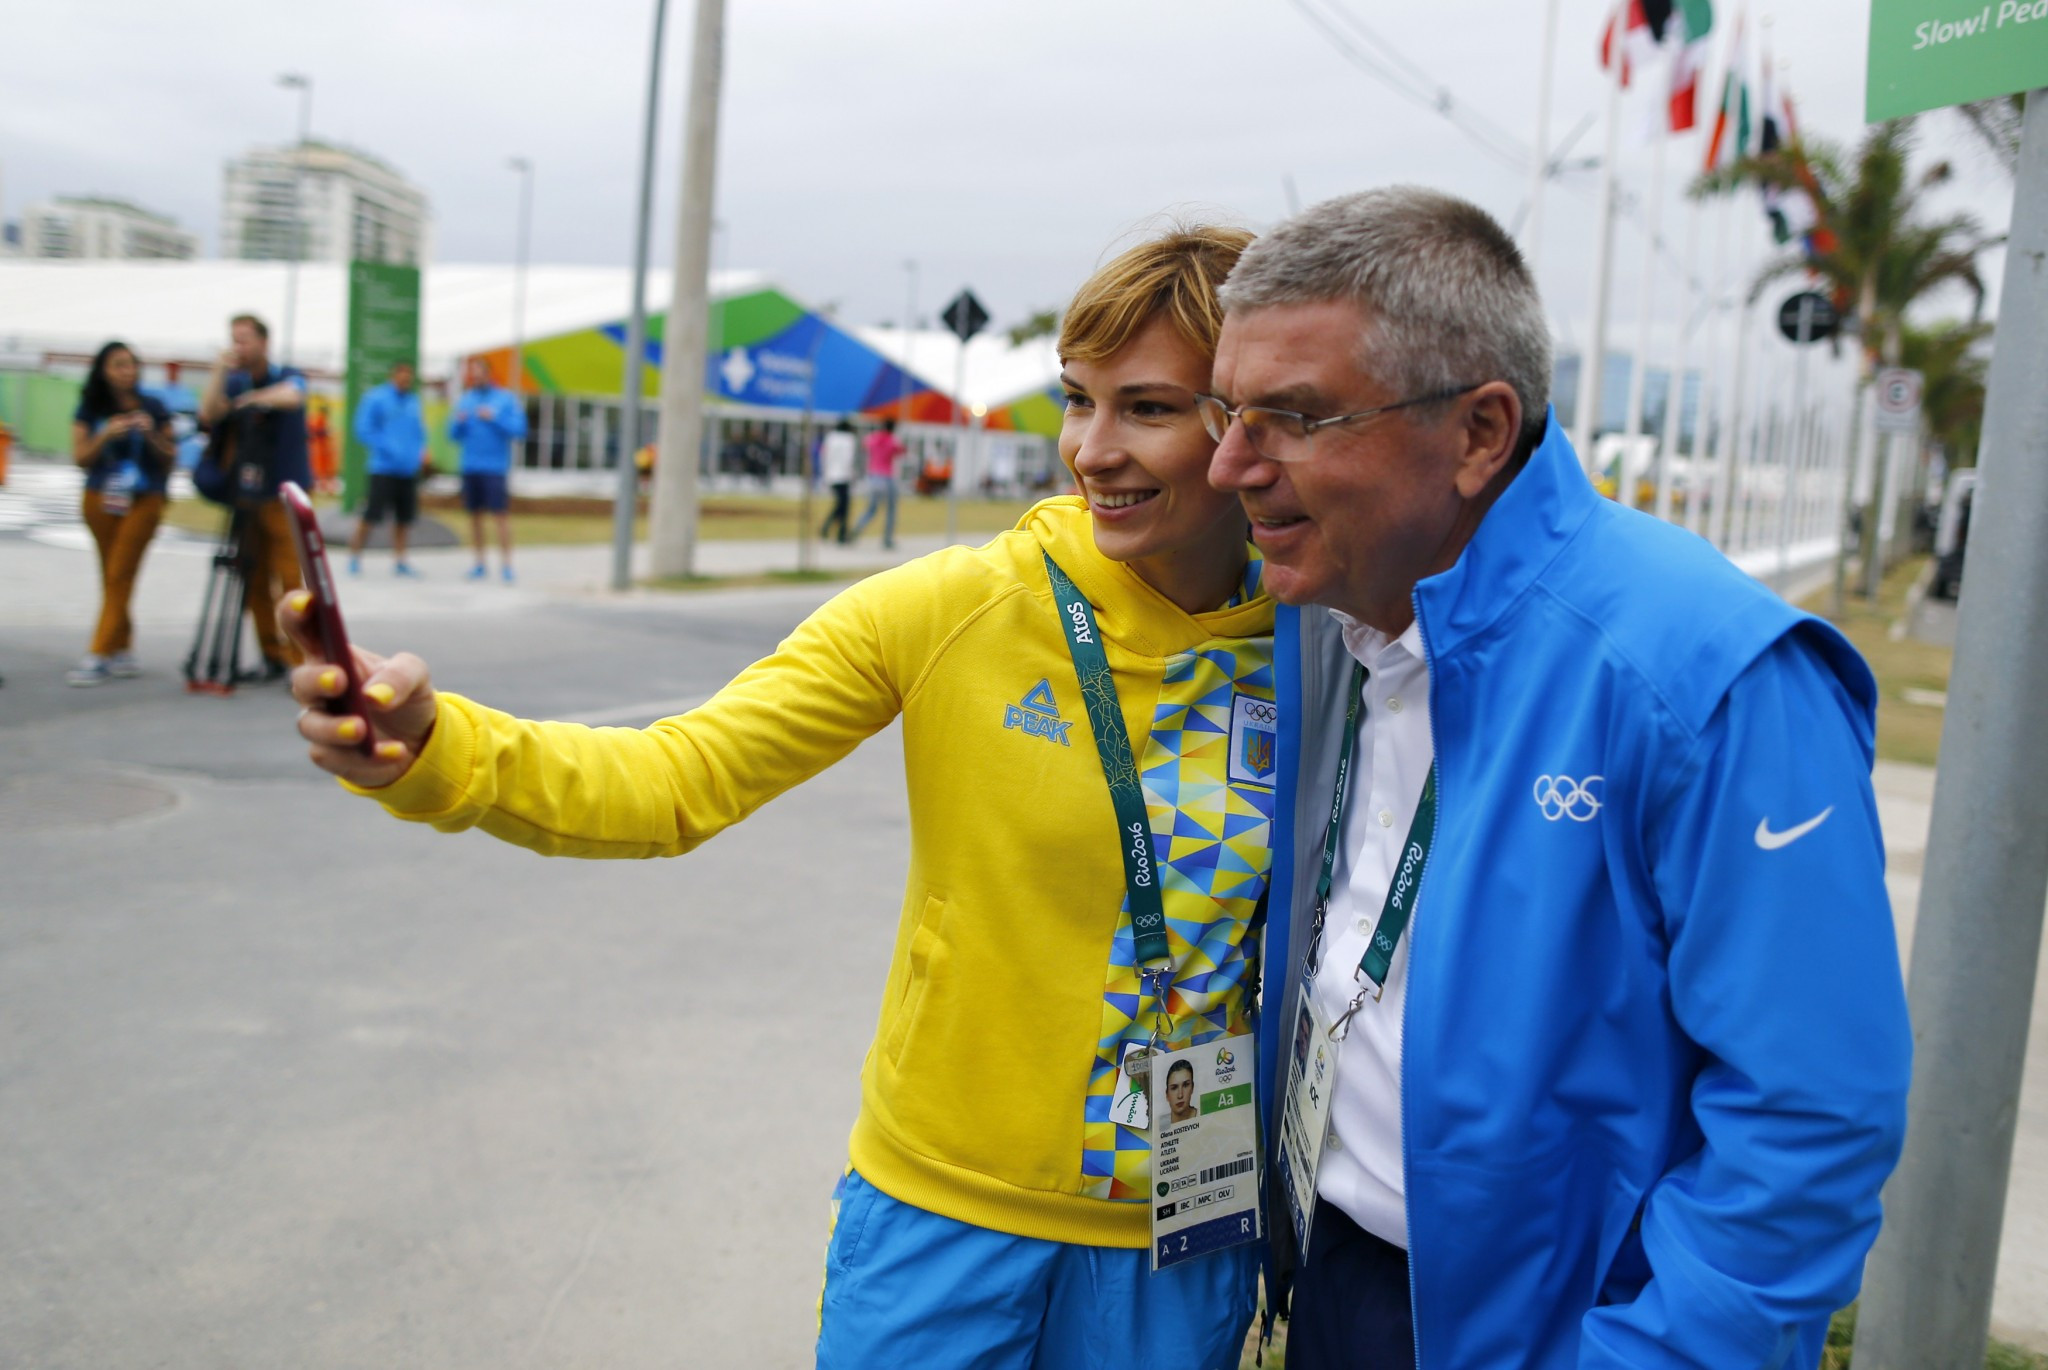 Ukraine's Olena Kostevych, pictured alongside International Olympic Committee President Thomas Bach, is among the members of the European Shooting Confederation Athletes' Commission ©Getty Images